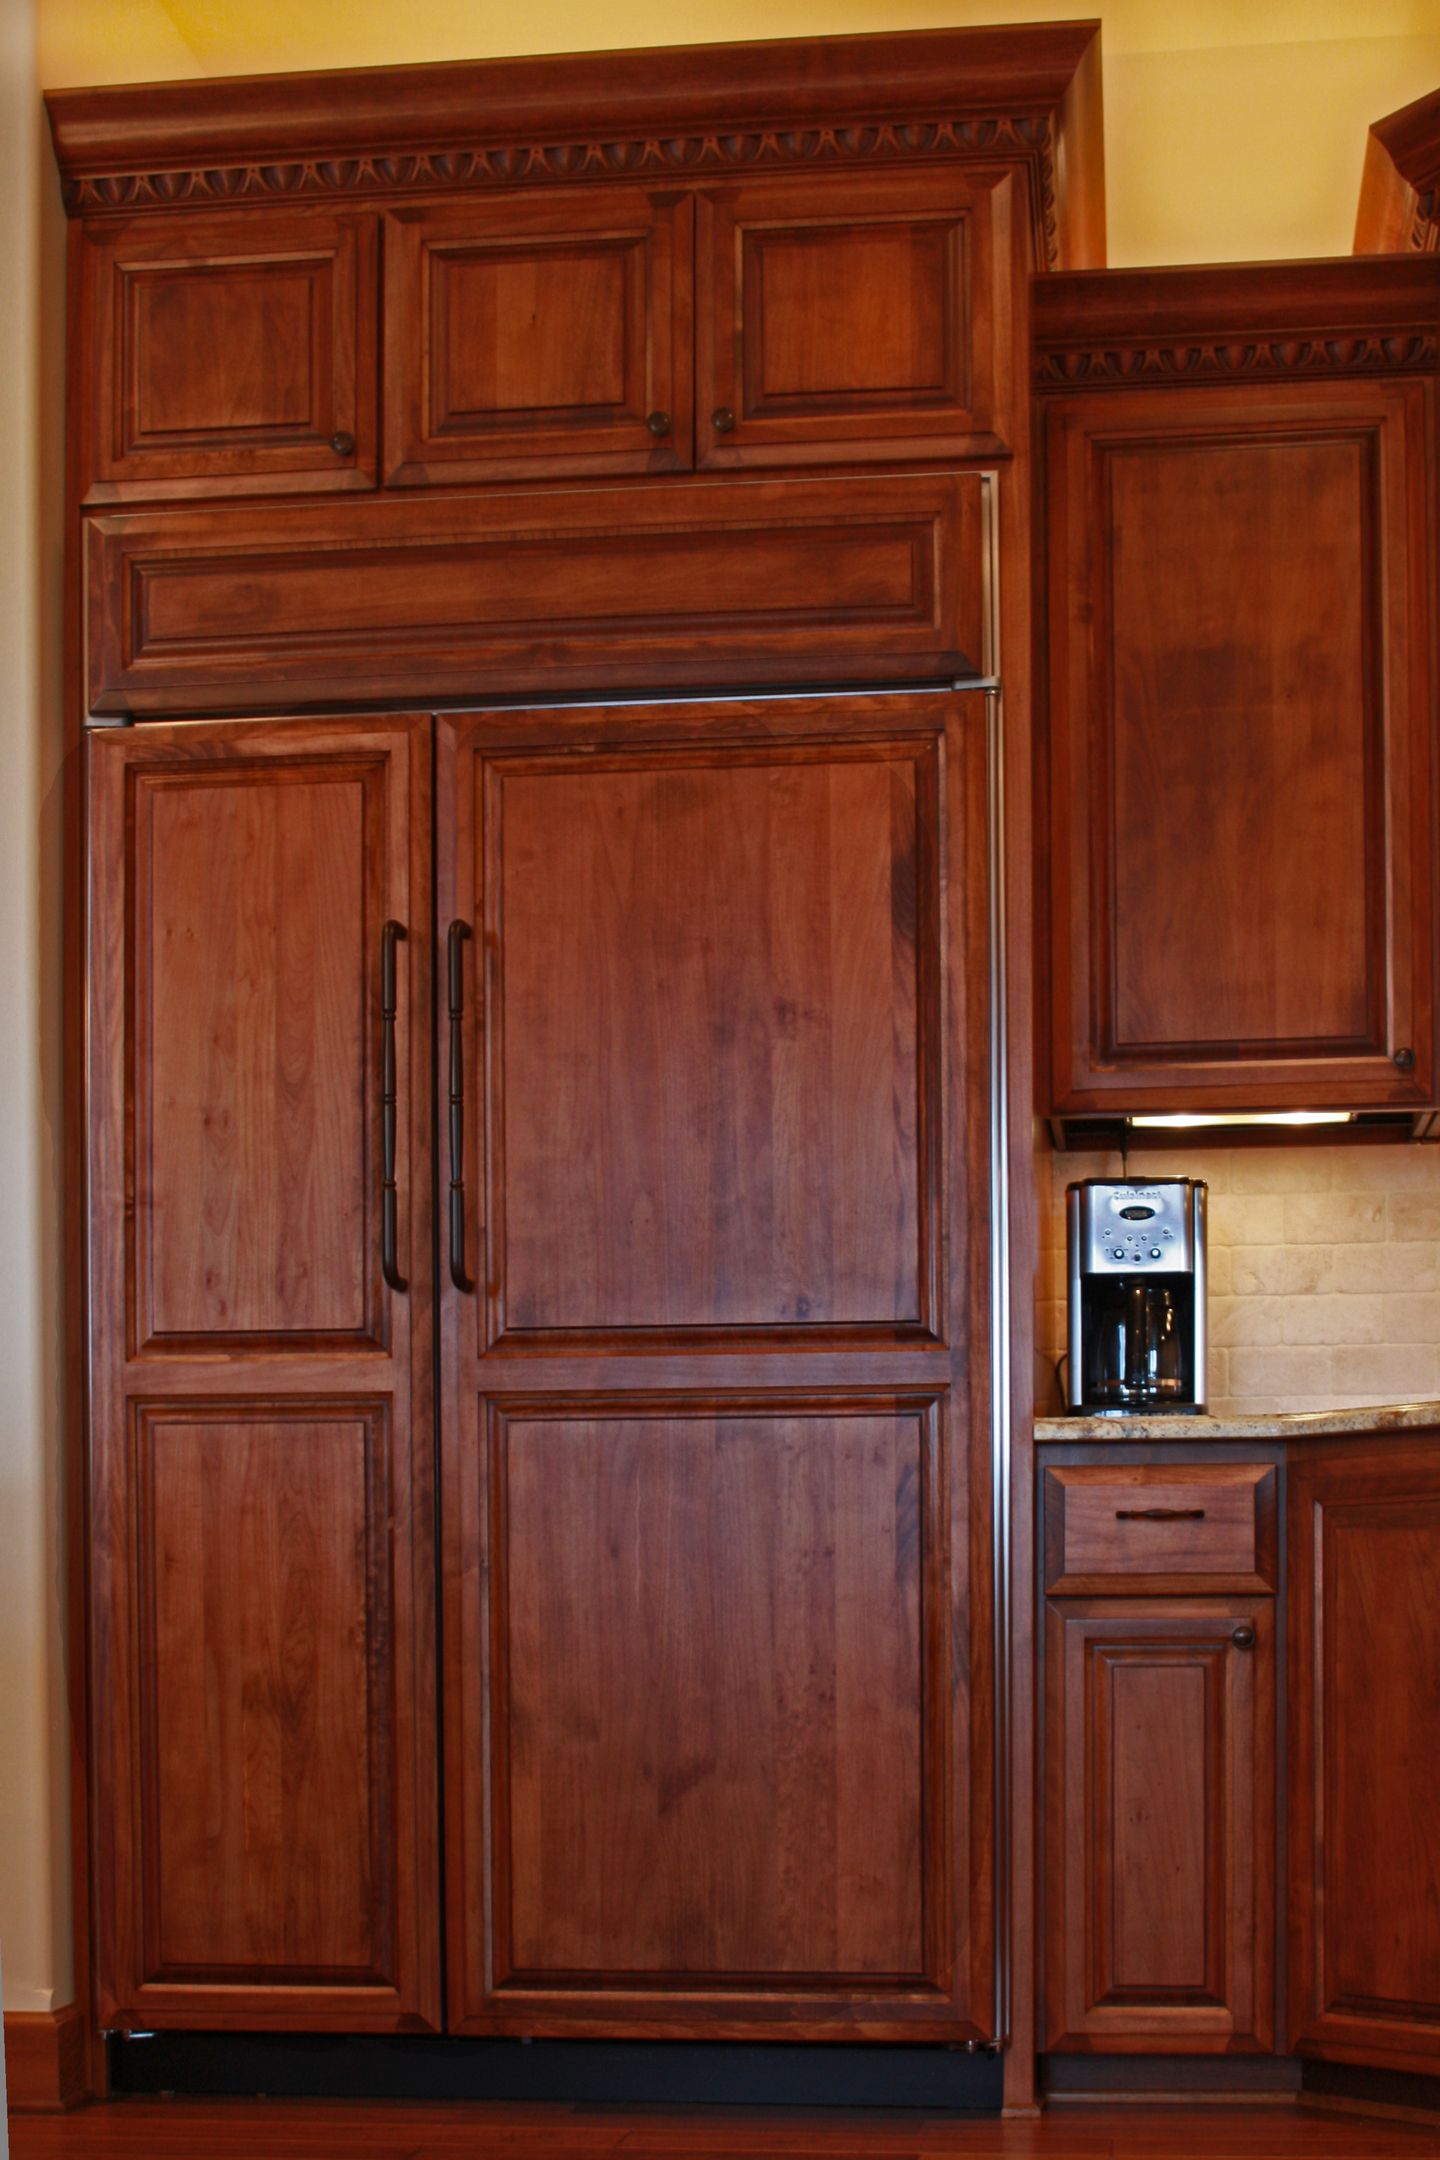 Wooden Refrigerator Cabinets ~ Affordable custom cabinets showroom